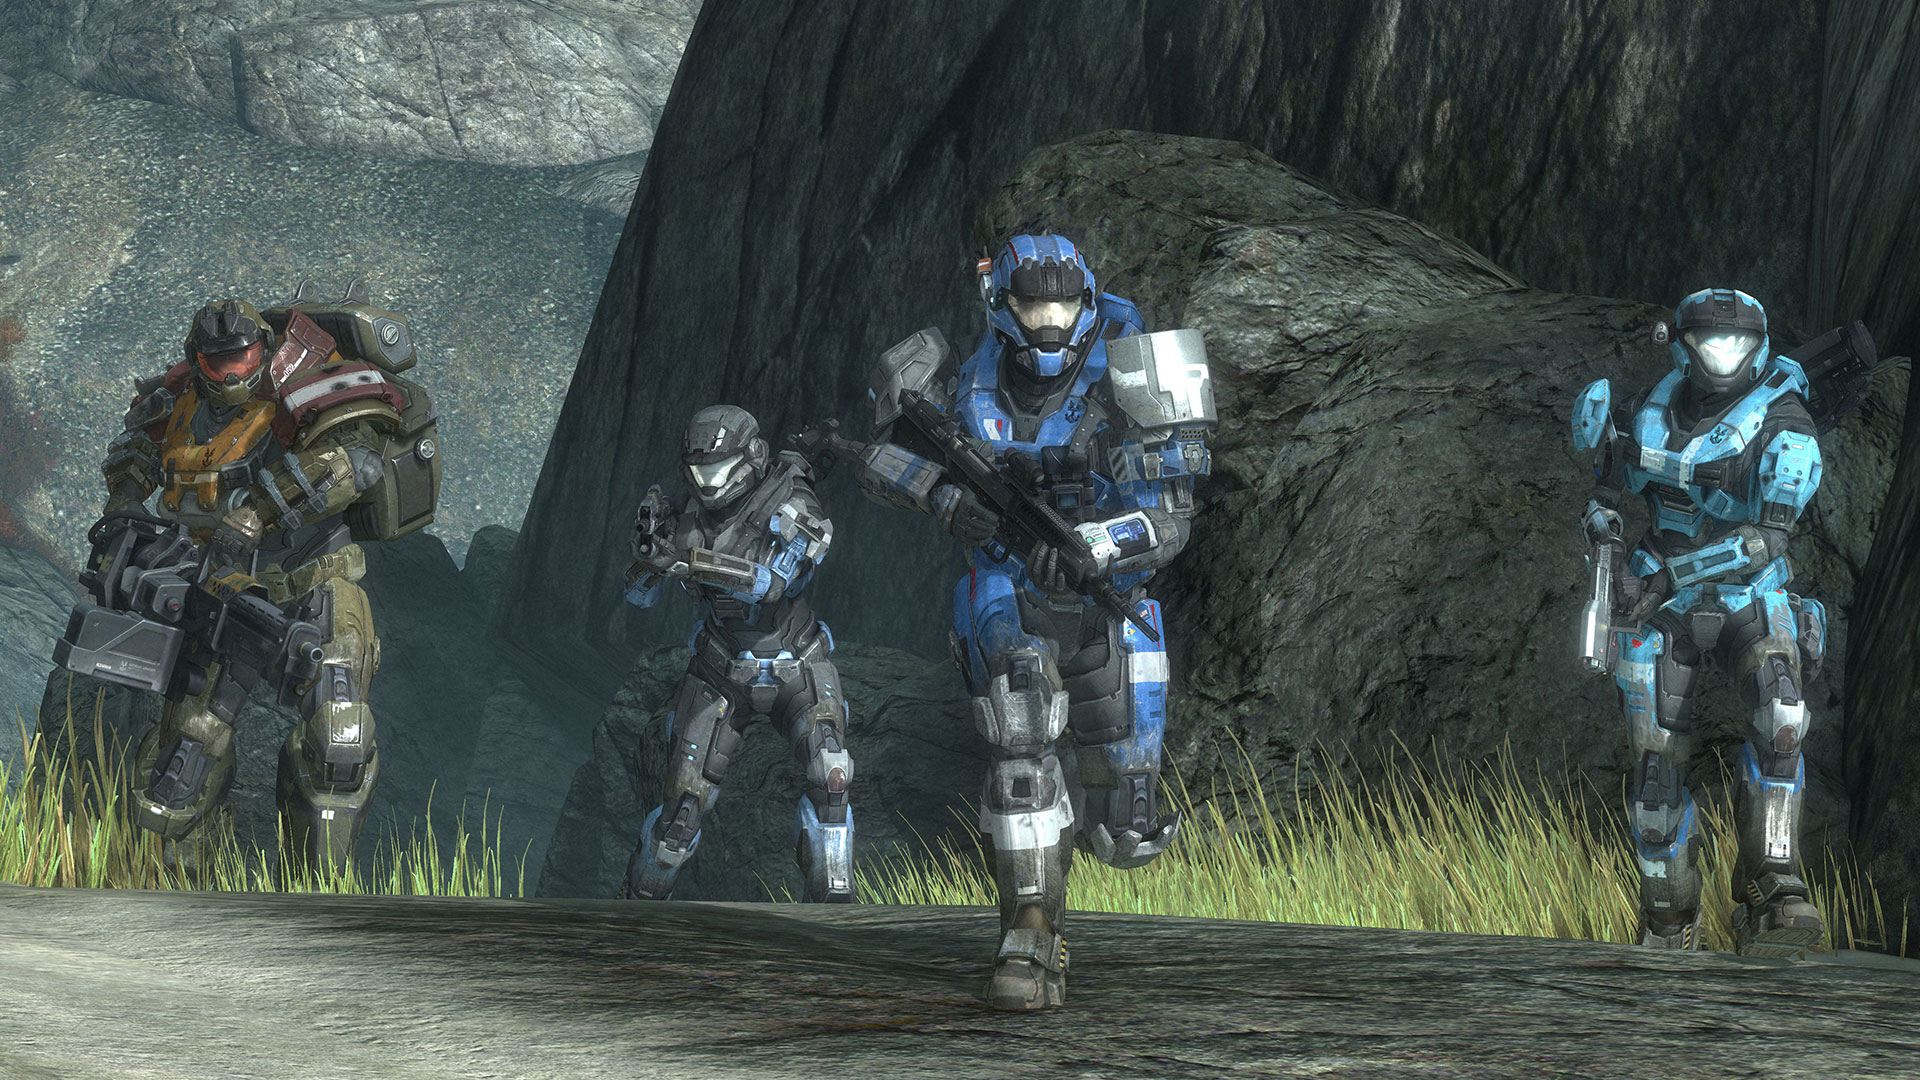 10 years later Bungie Halo: Reach interview game development secrets with Marcus Lehto, Lee Wilson